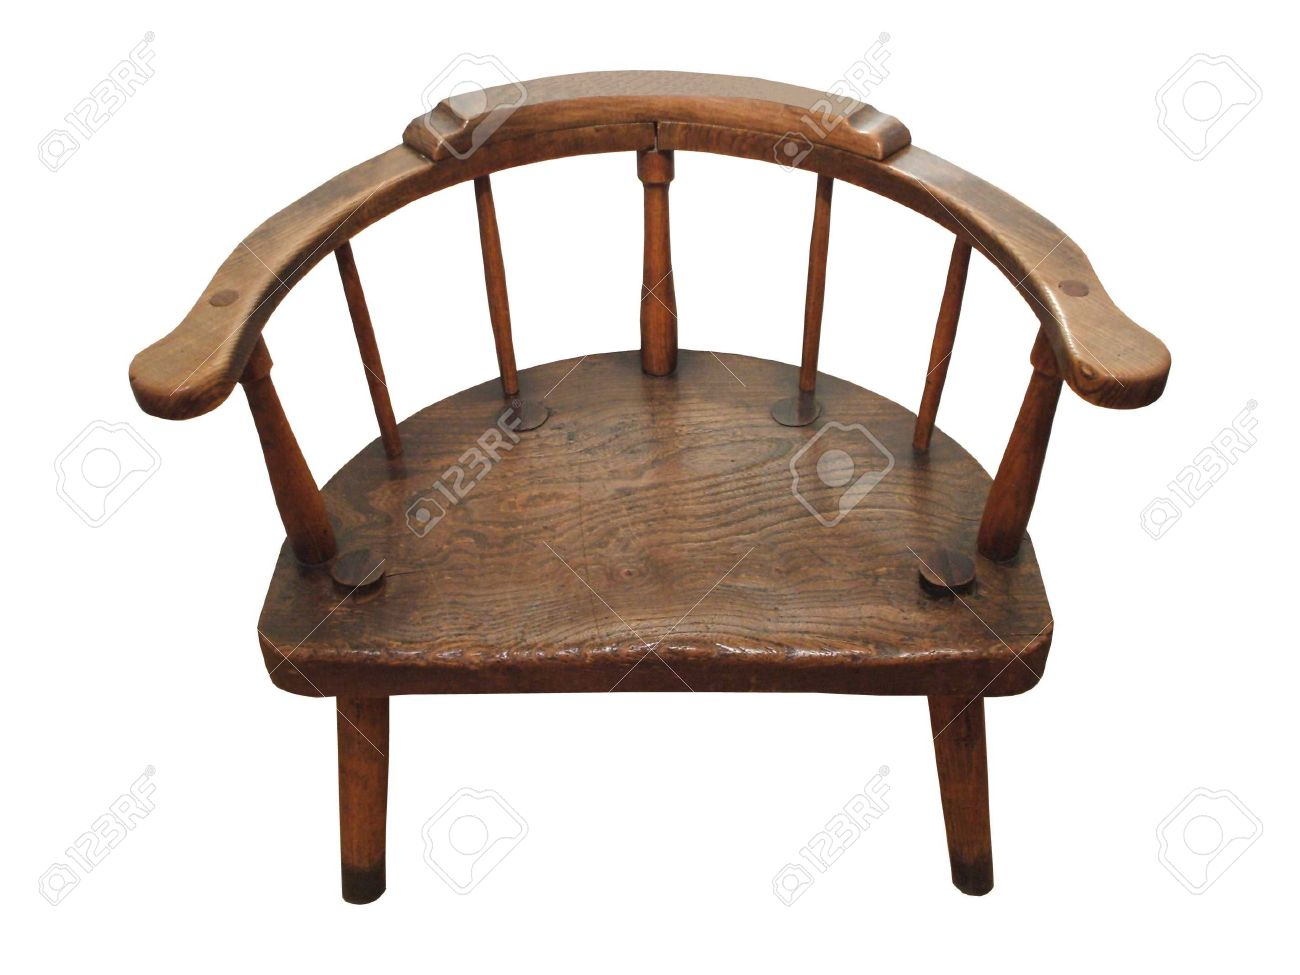 round wooden chair graco blossom high winslet a backed wide antique stock photo picture and 5902331